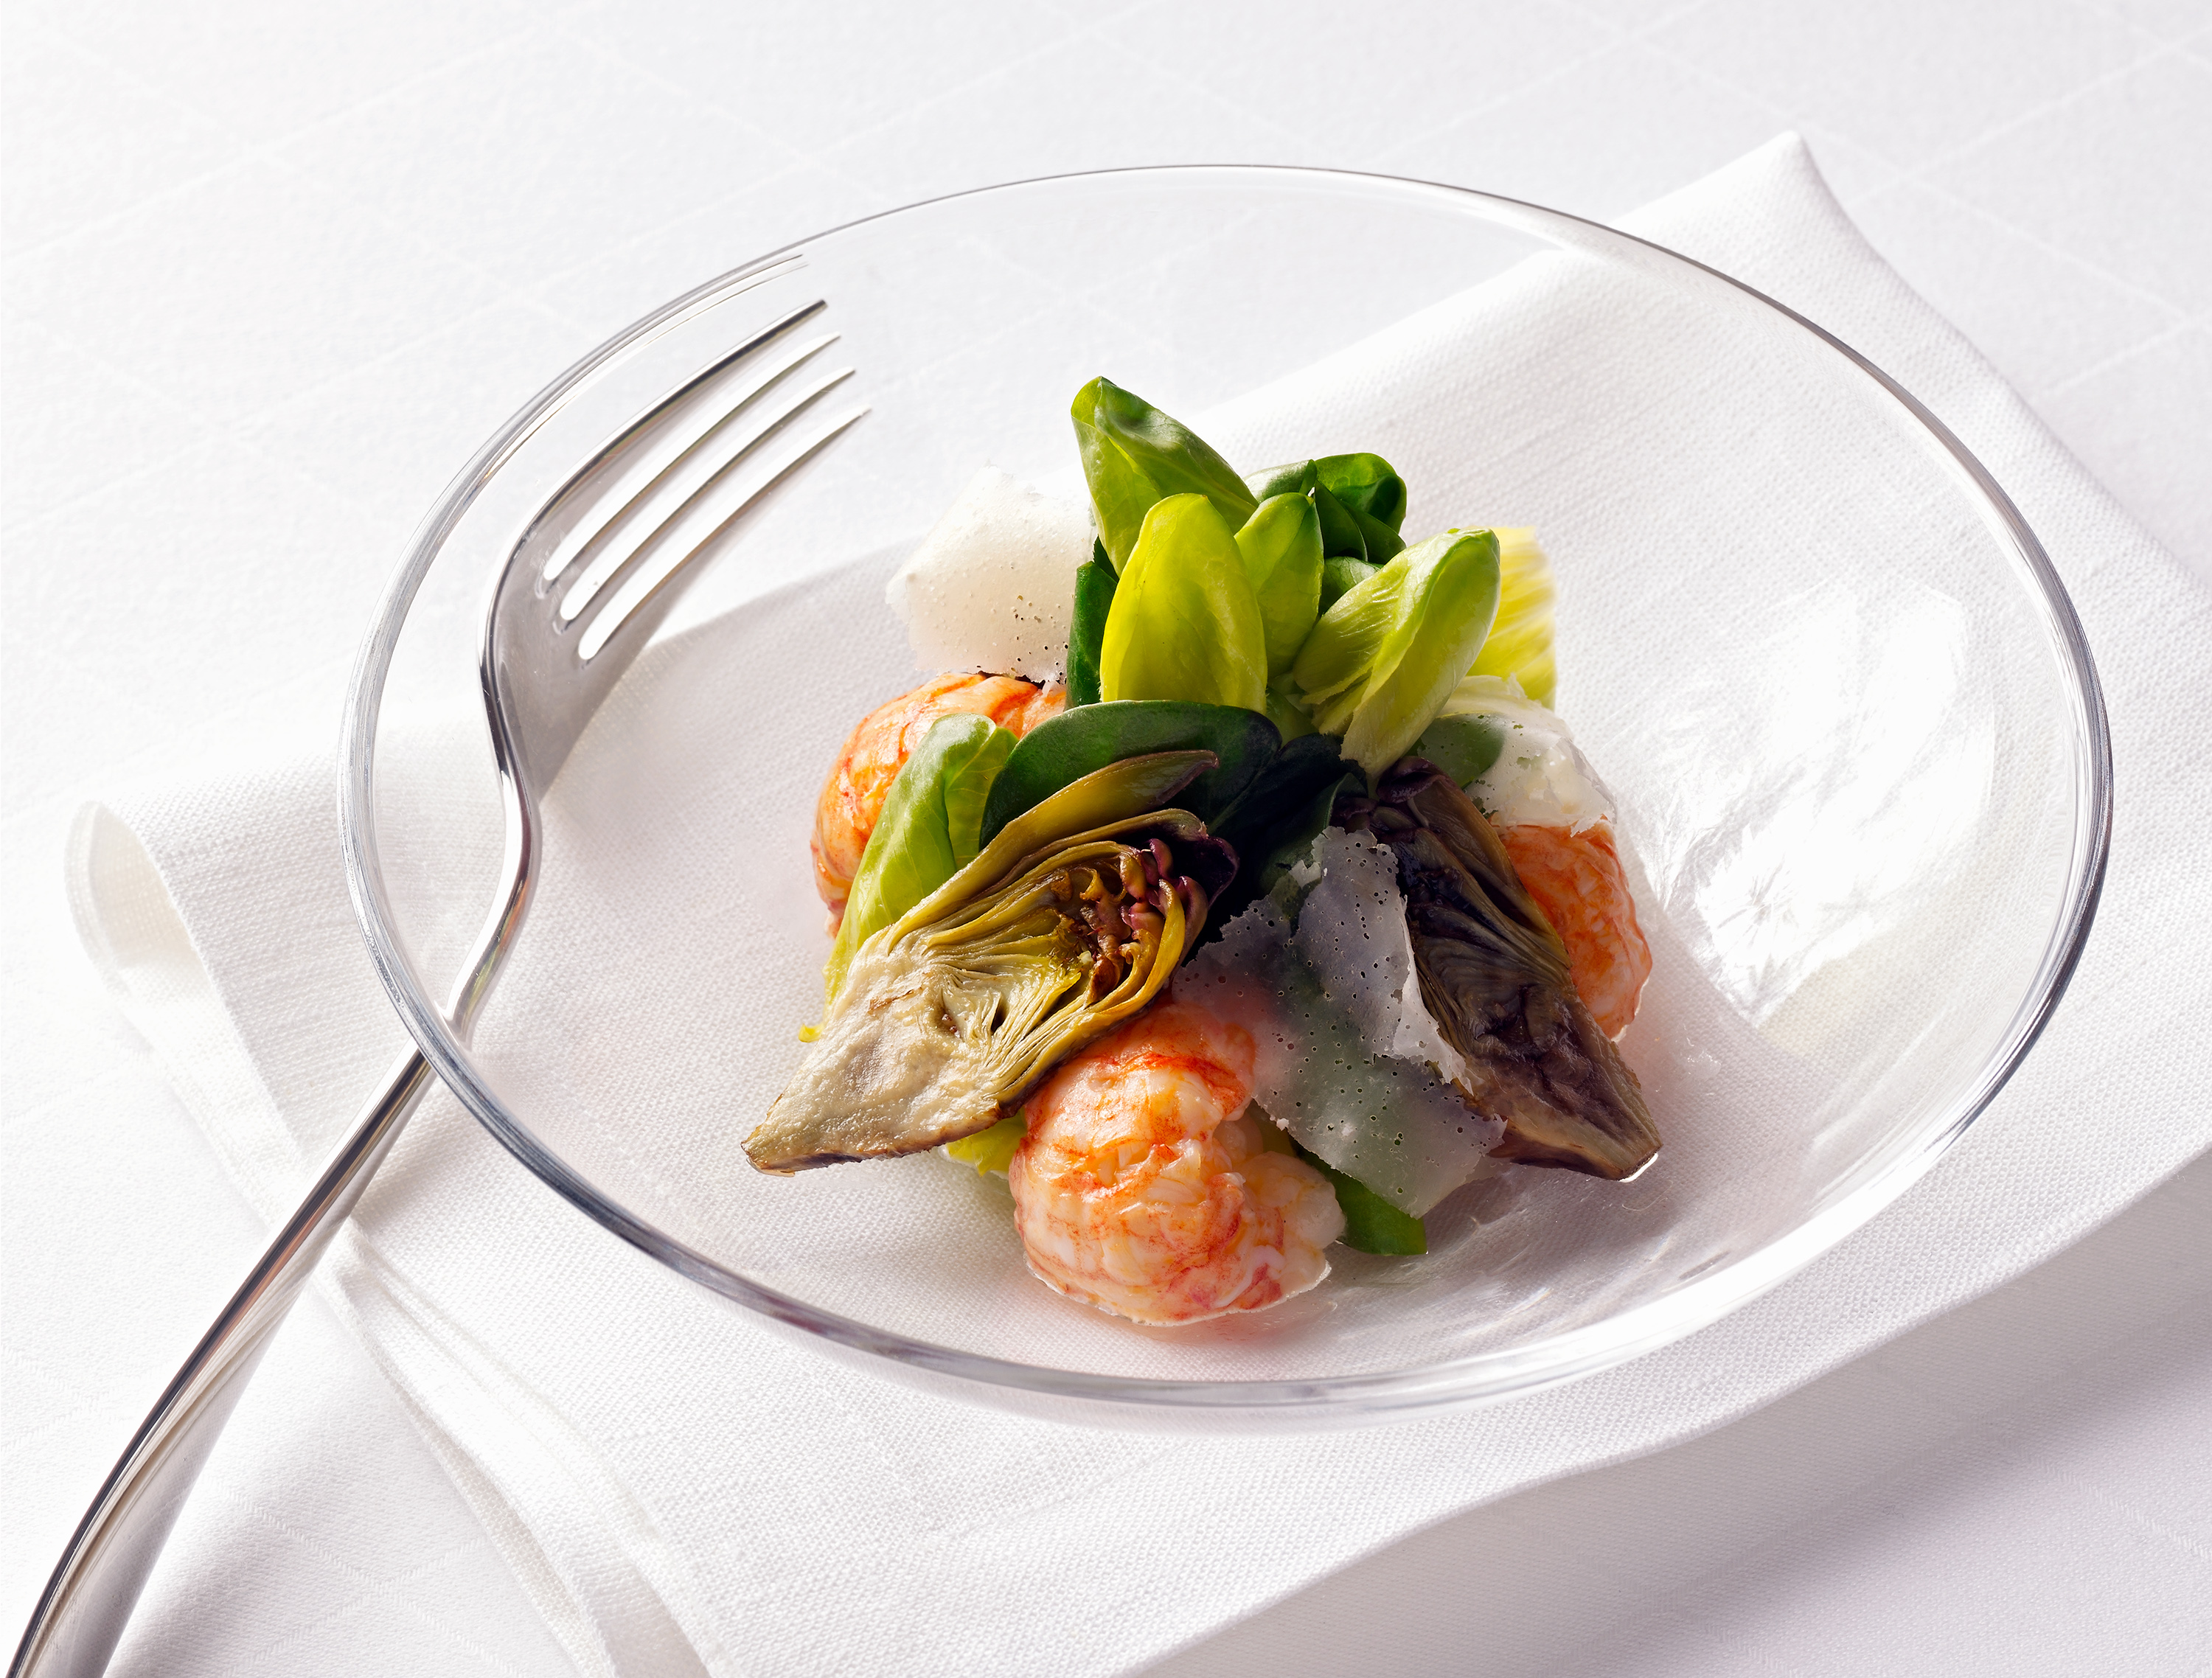 packaging shots of a dinner with seafood salad in a glass bowl